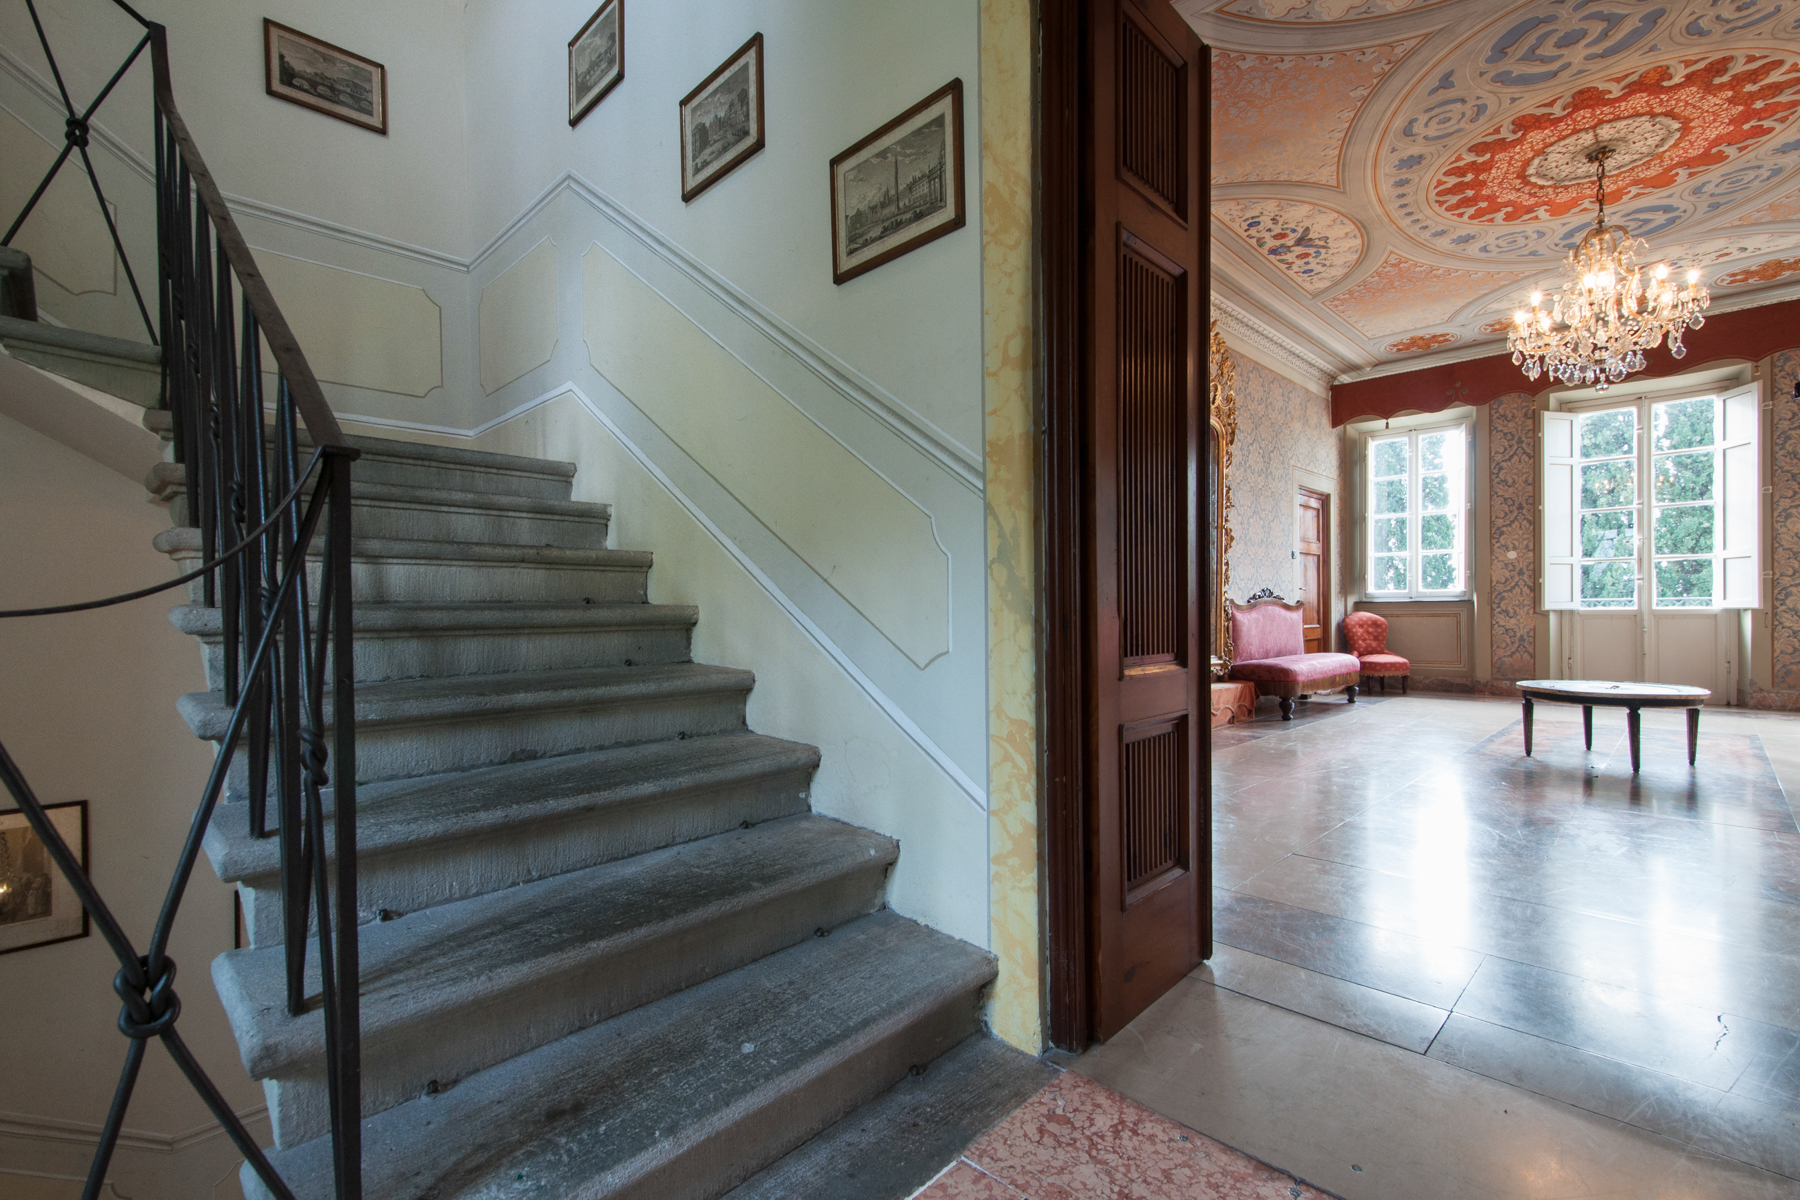 Additional photo for property listing at Nice villa with guest house in Lucchesia San Michele di Moriano Lucca, Lucca 55100 Italia